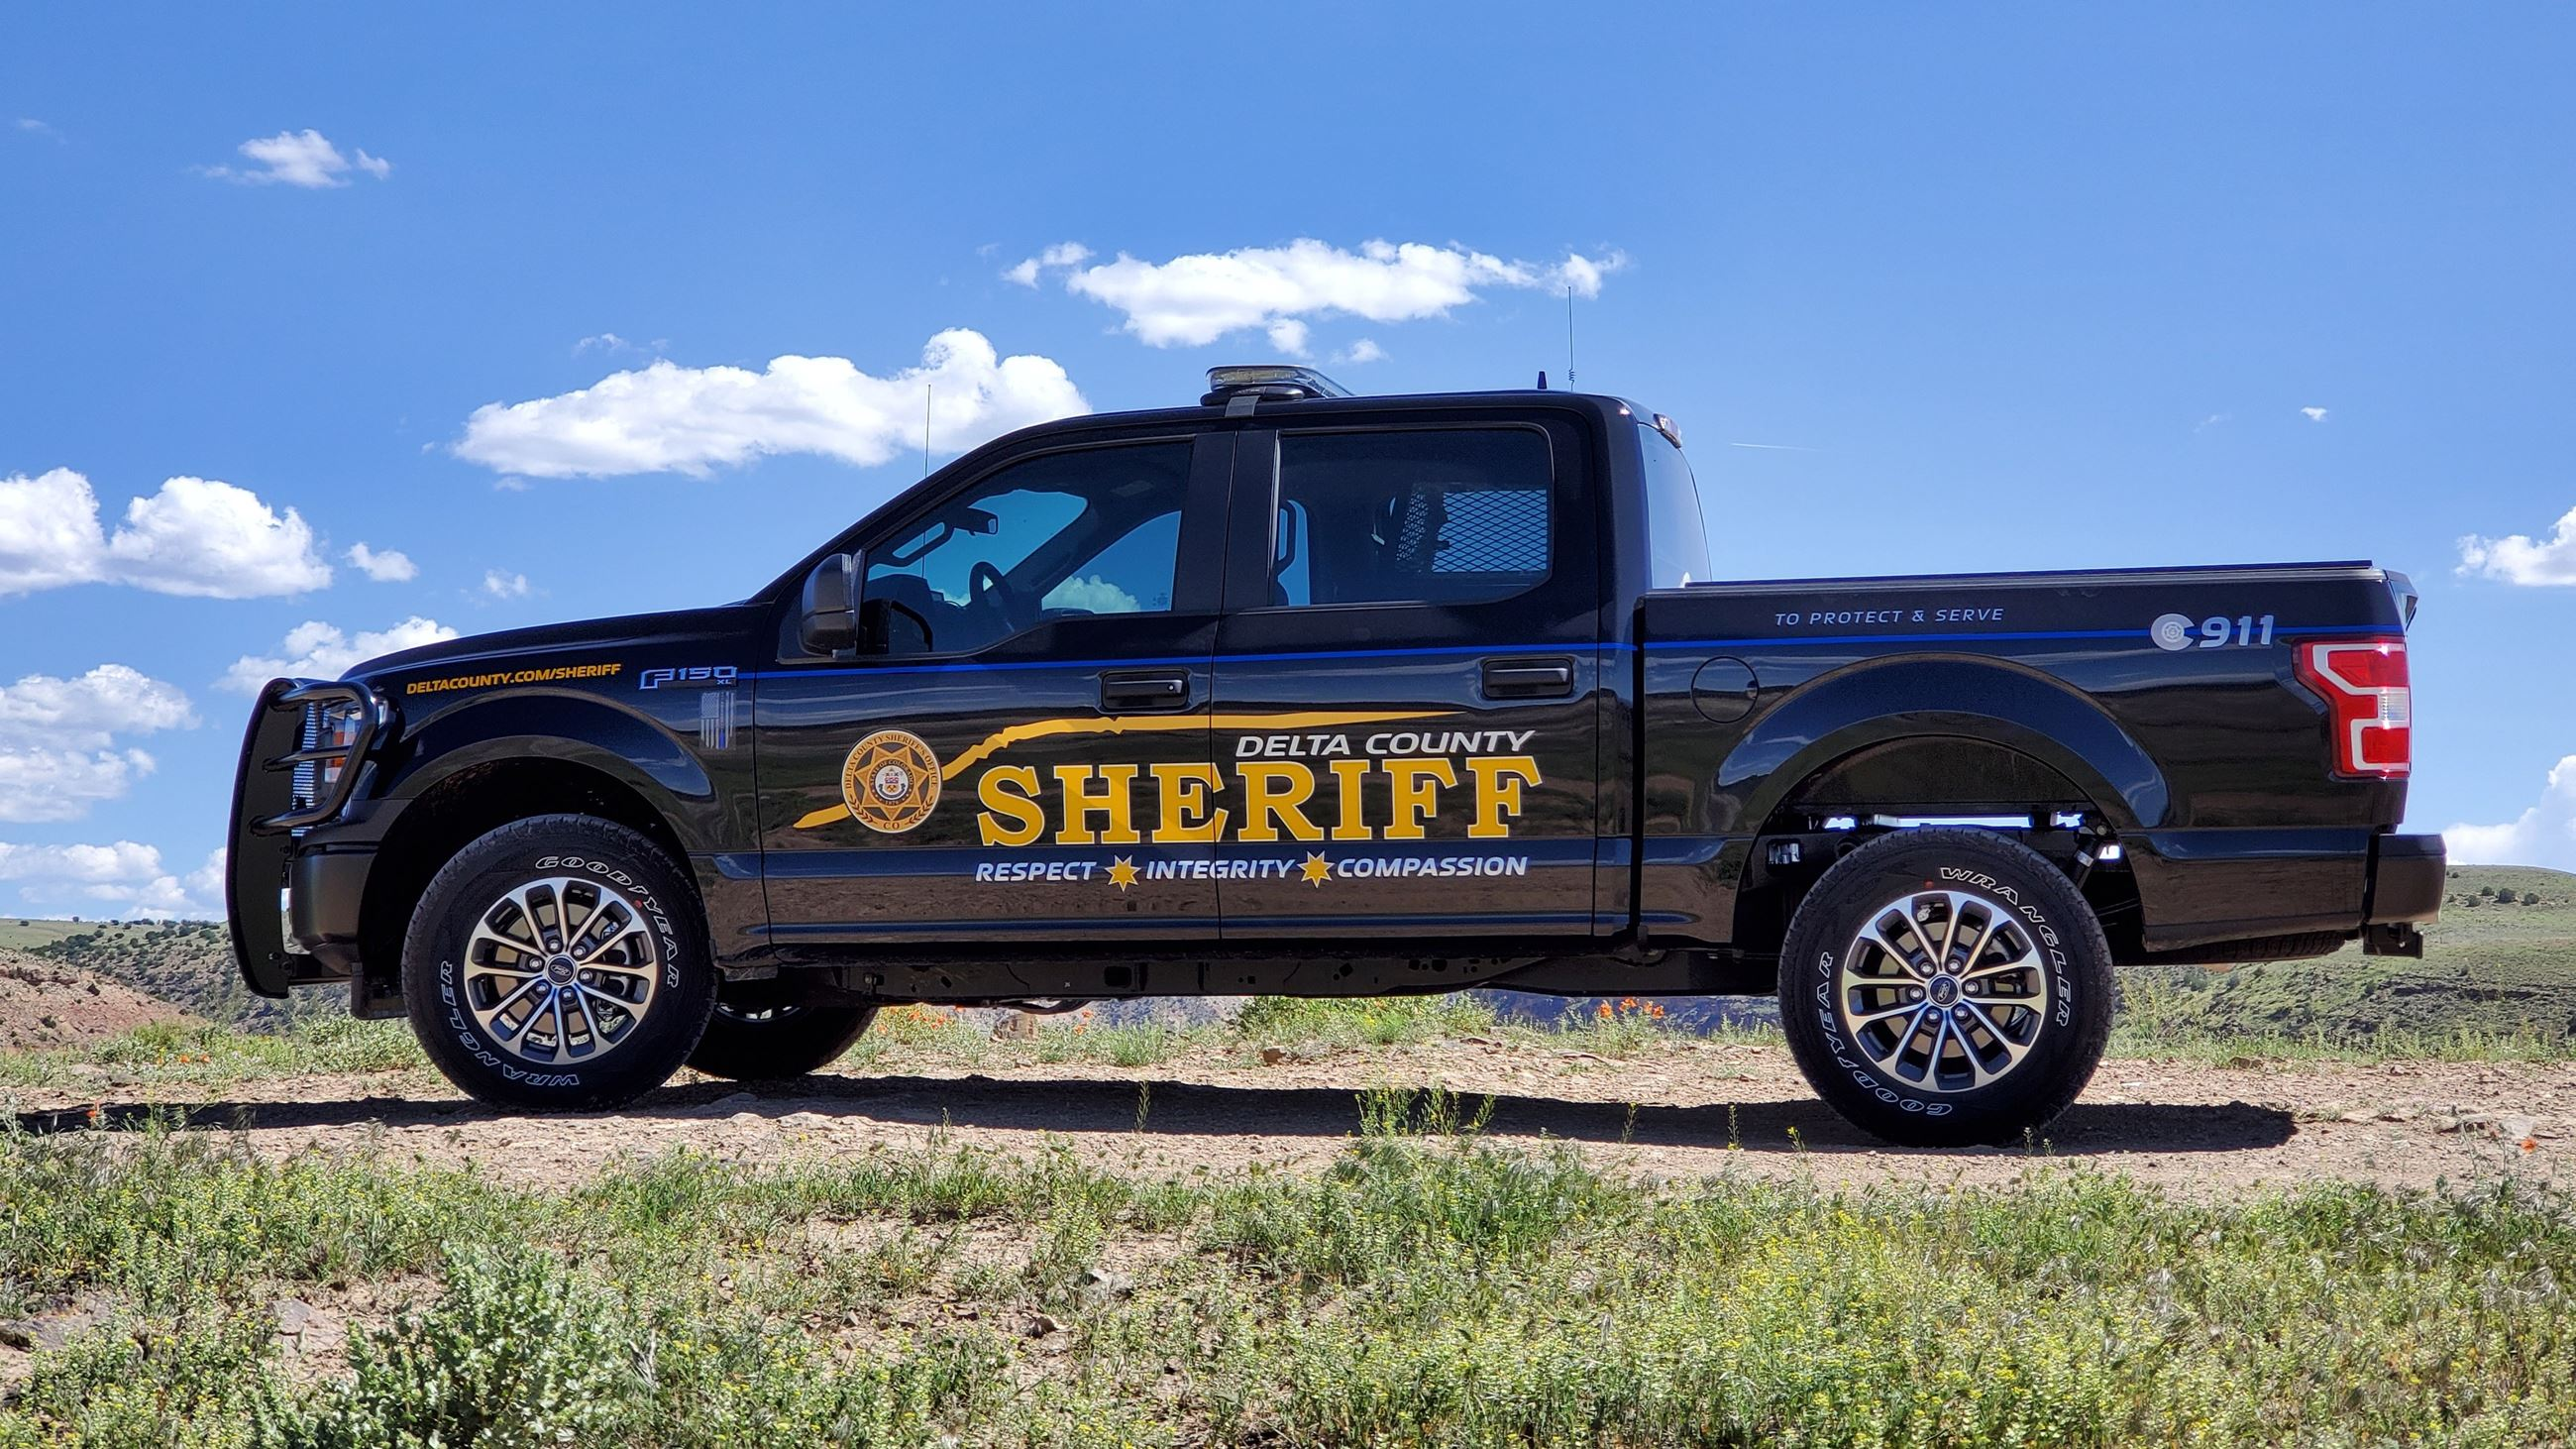 Side Profile of Sheriff Patrol Pickup Photo